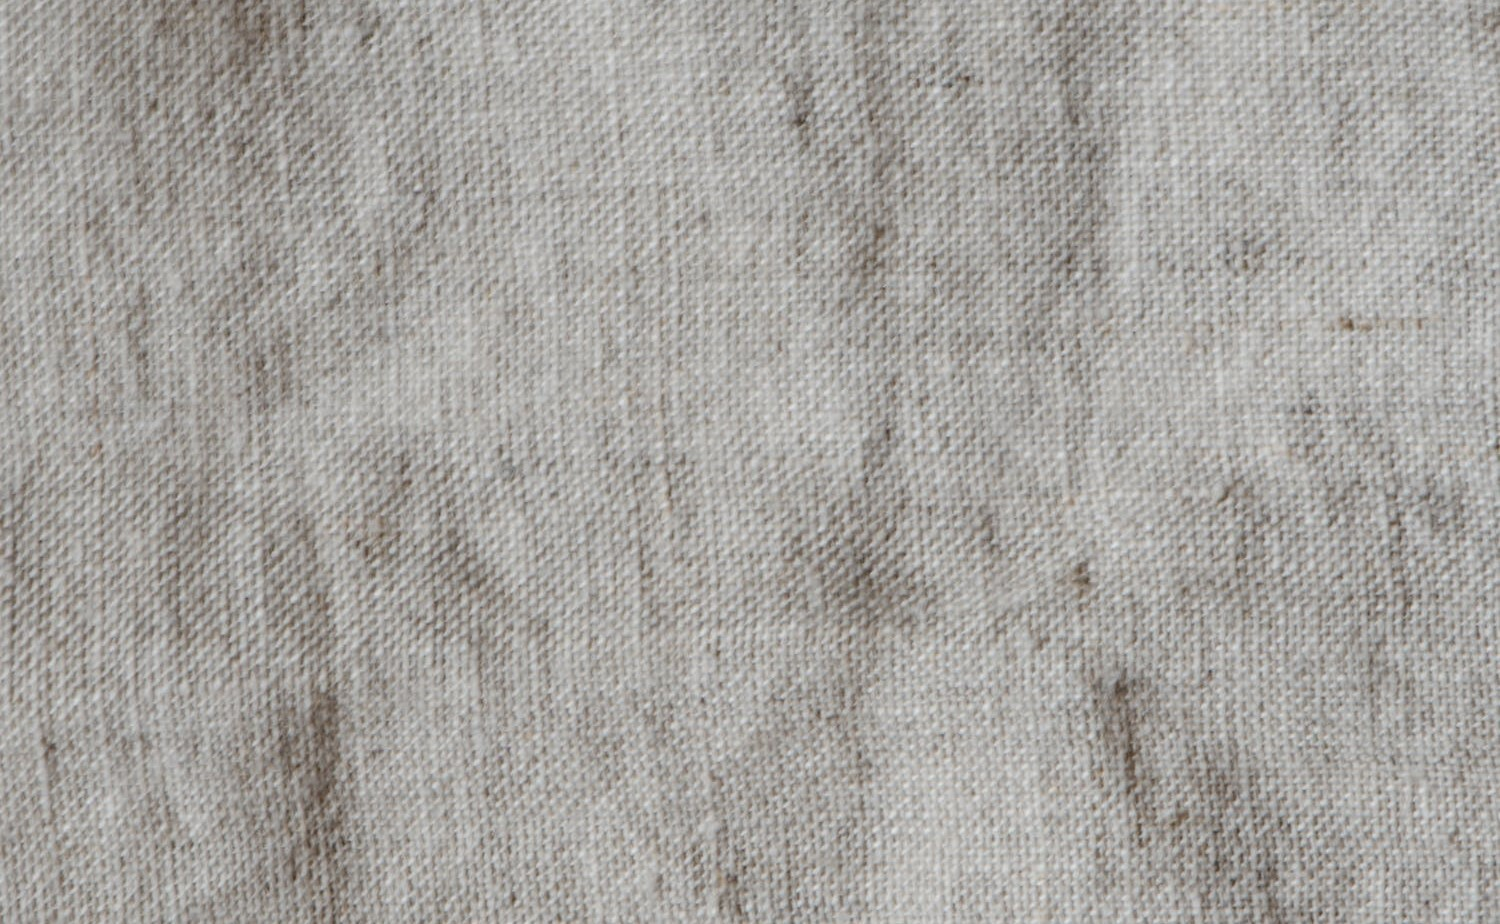 Delicate linen fabrics that would not be suitable for large dogs